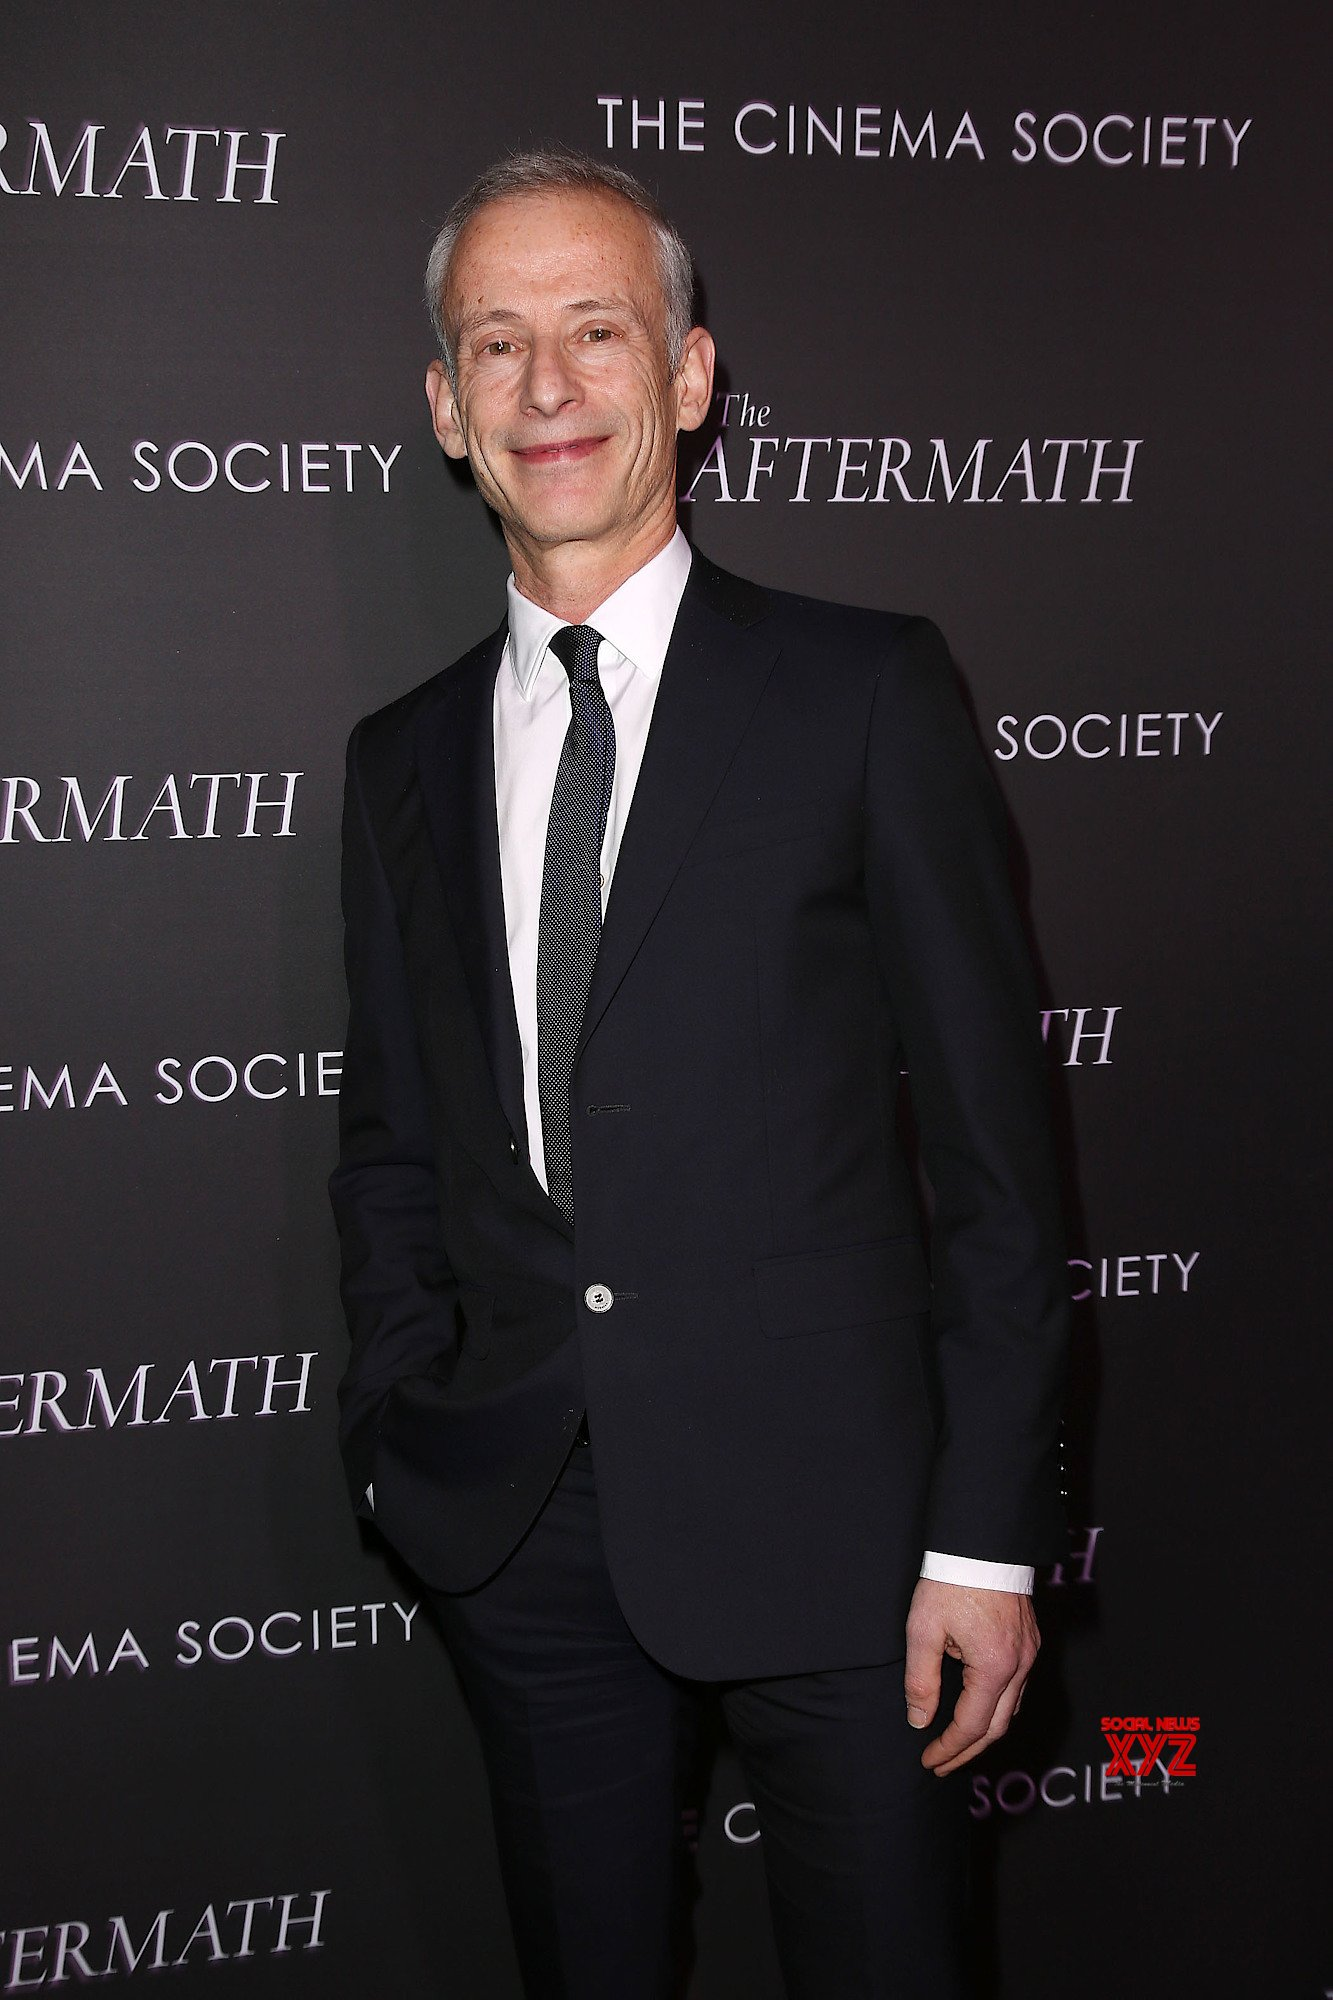 The Aftermath Movie NY Special Screening Gallery